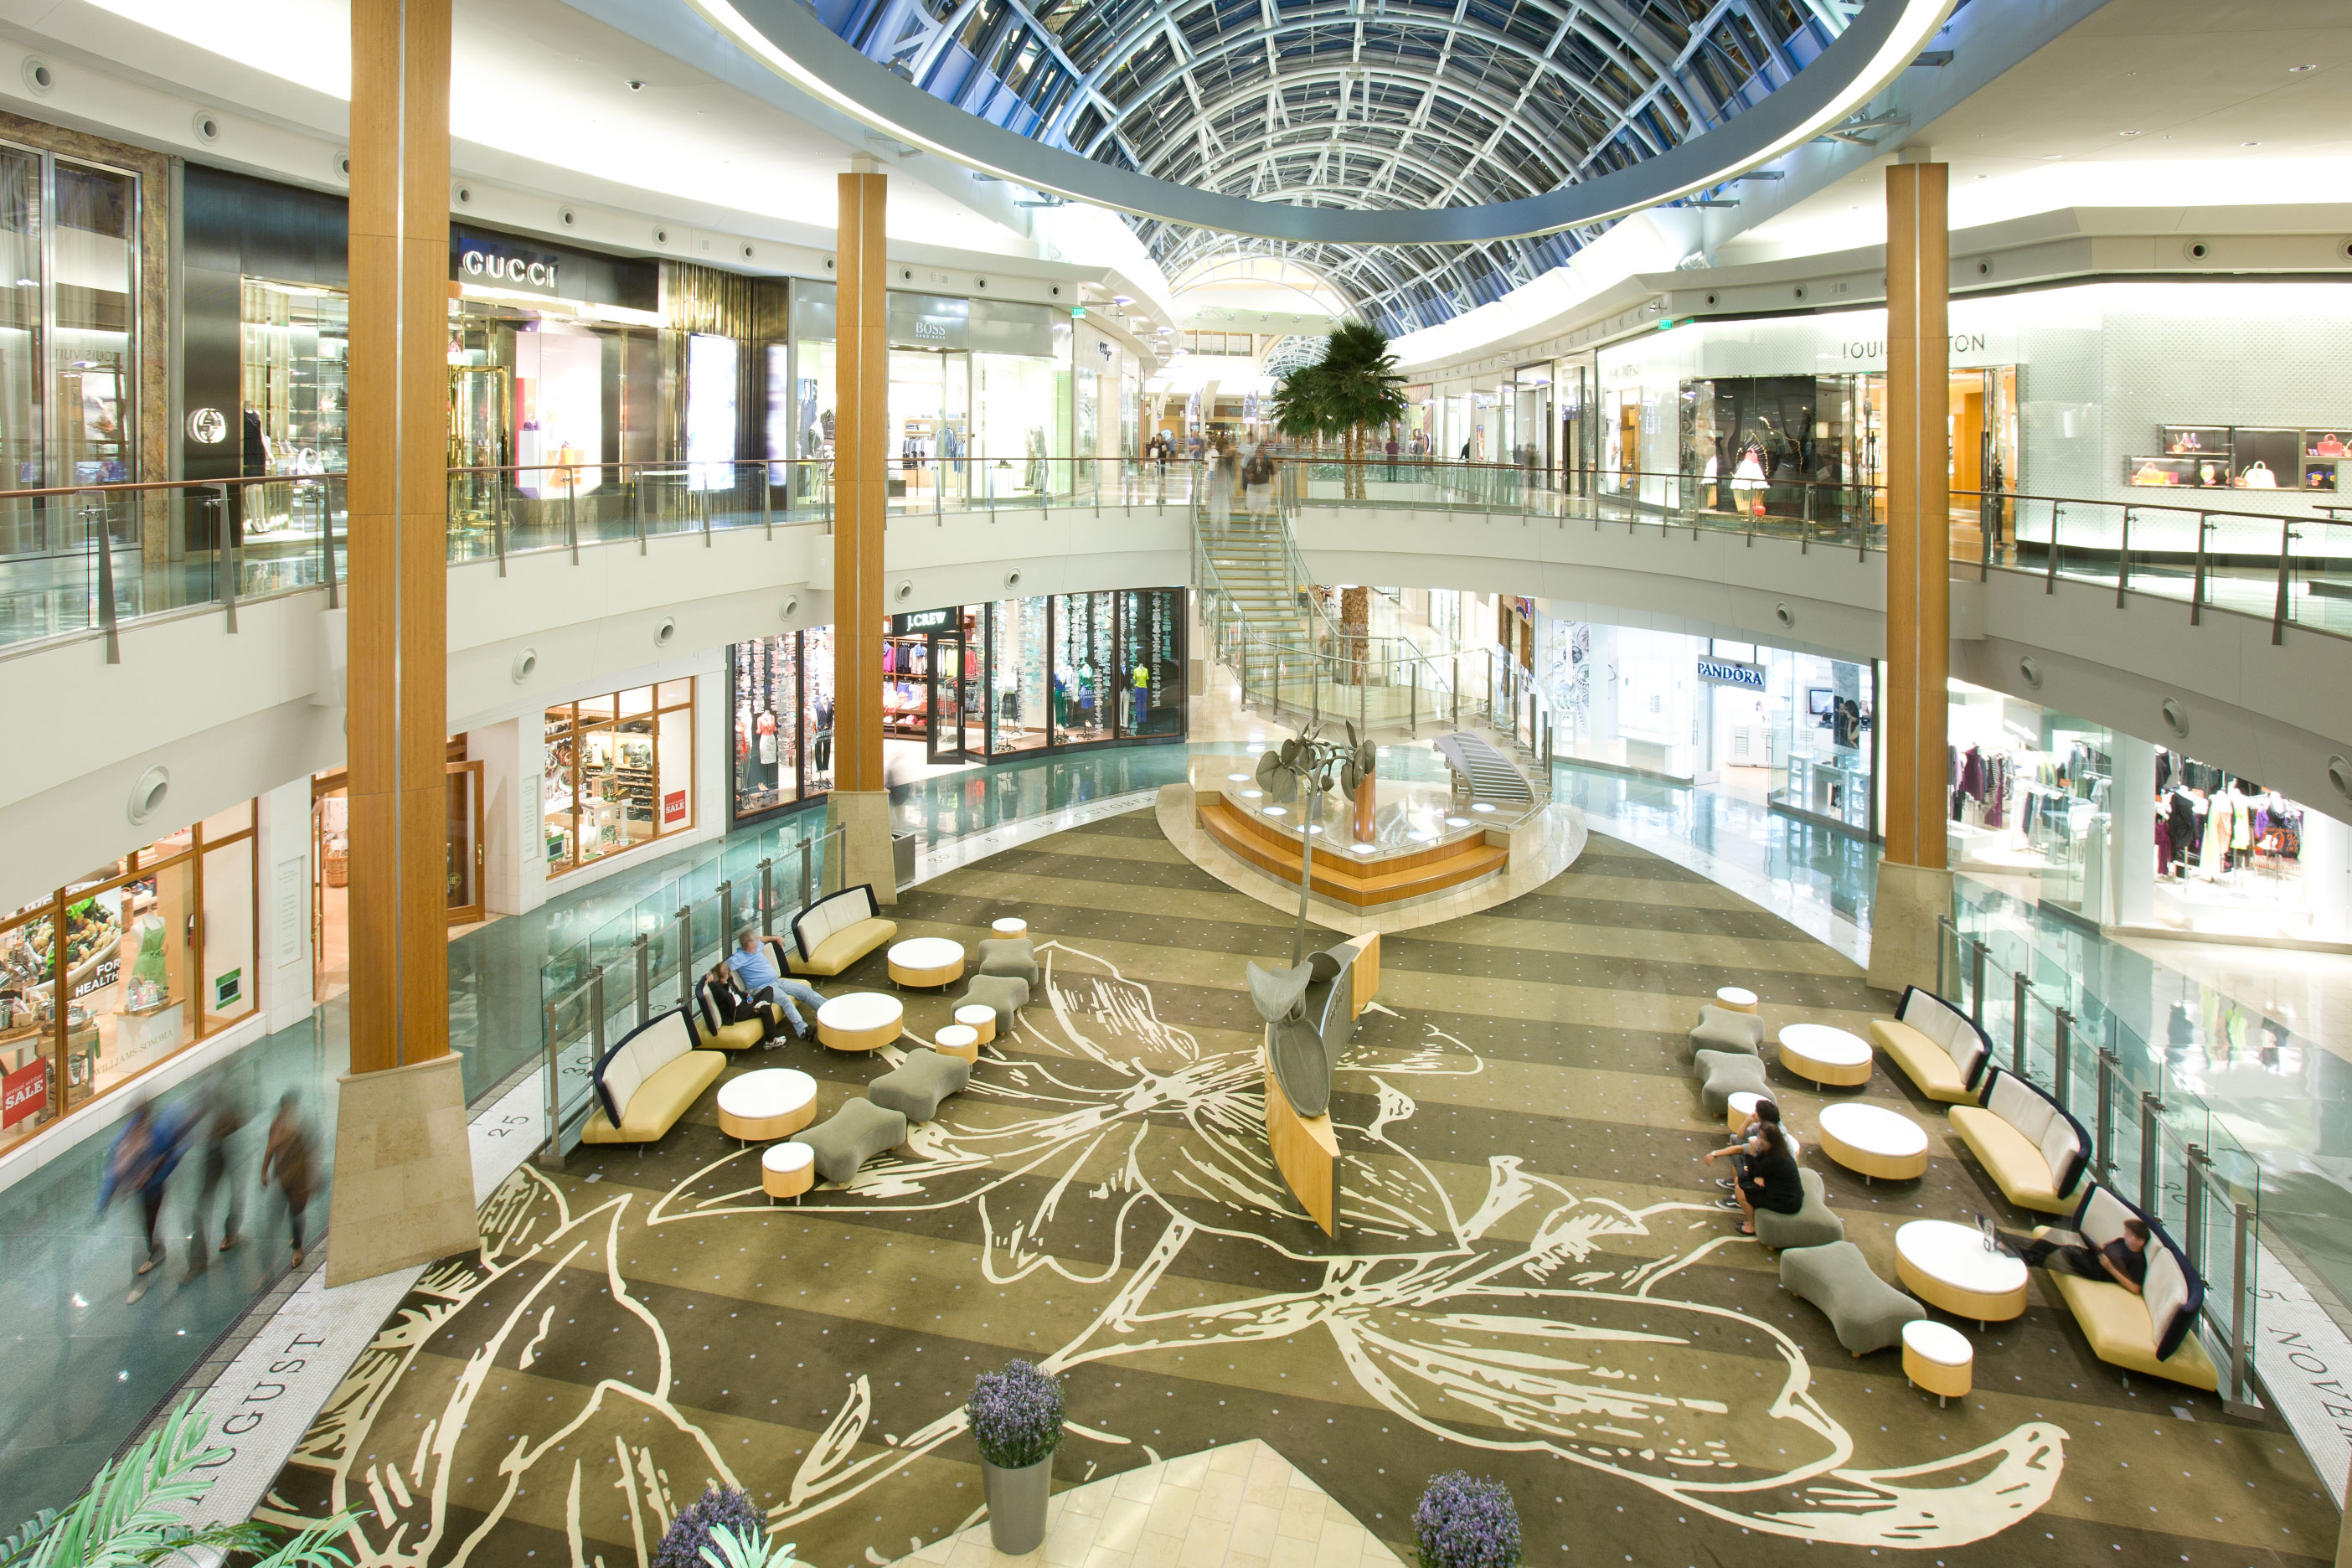 Top 5 shopping areas in Orlando